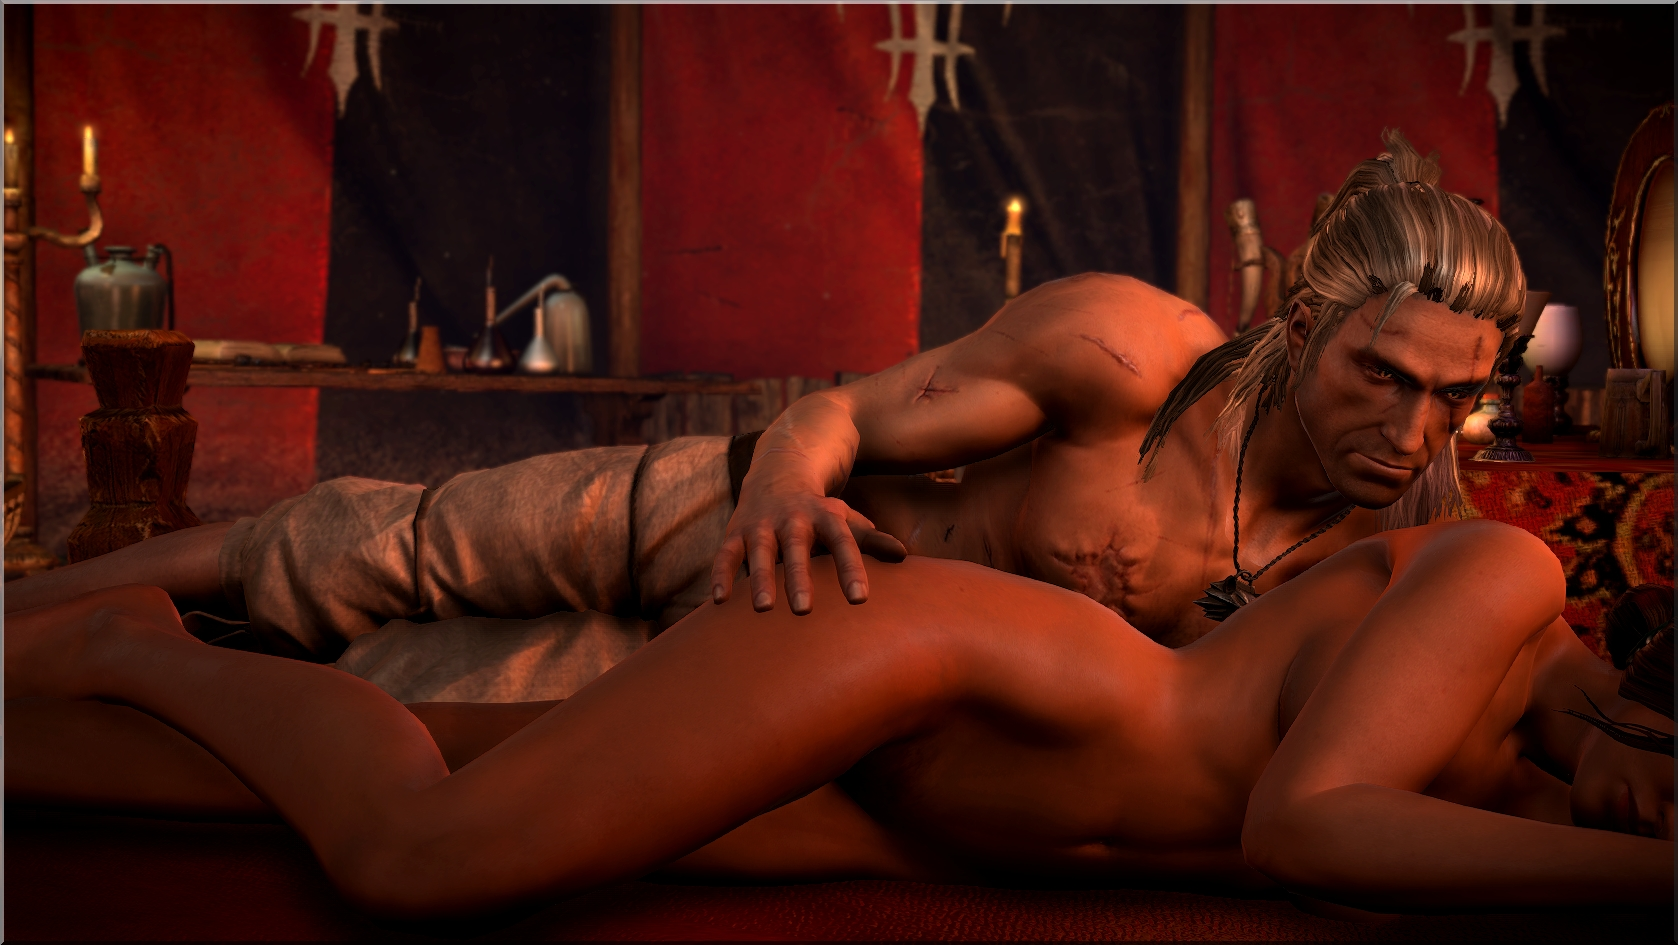 Rogue assassin sex scene sexy photo